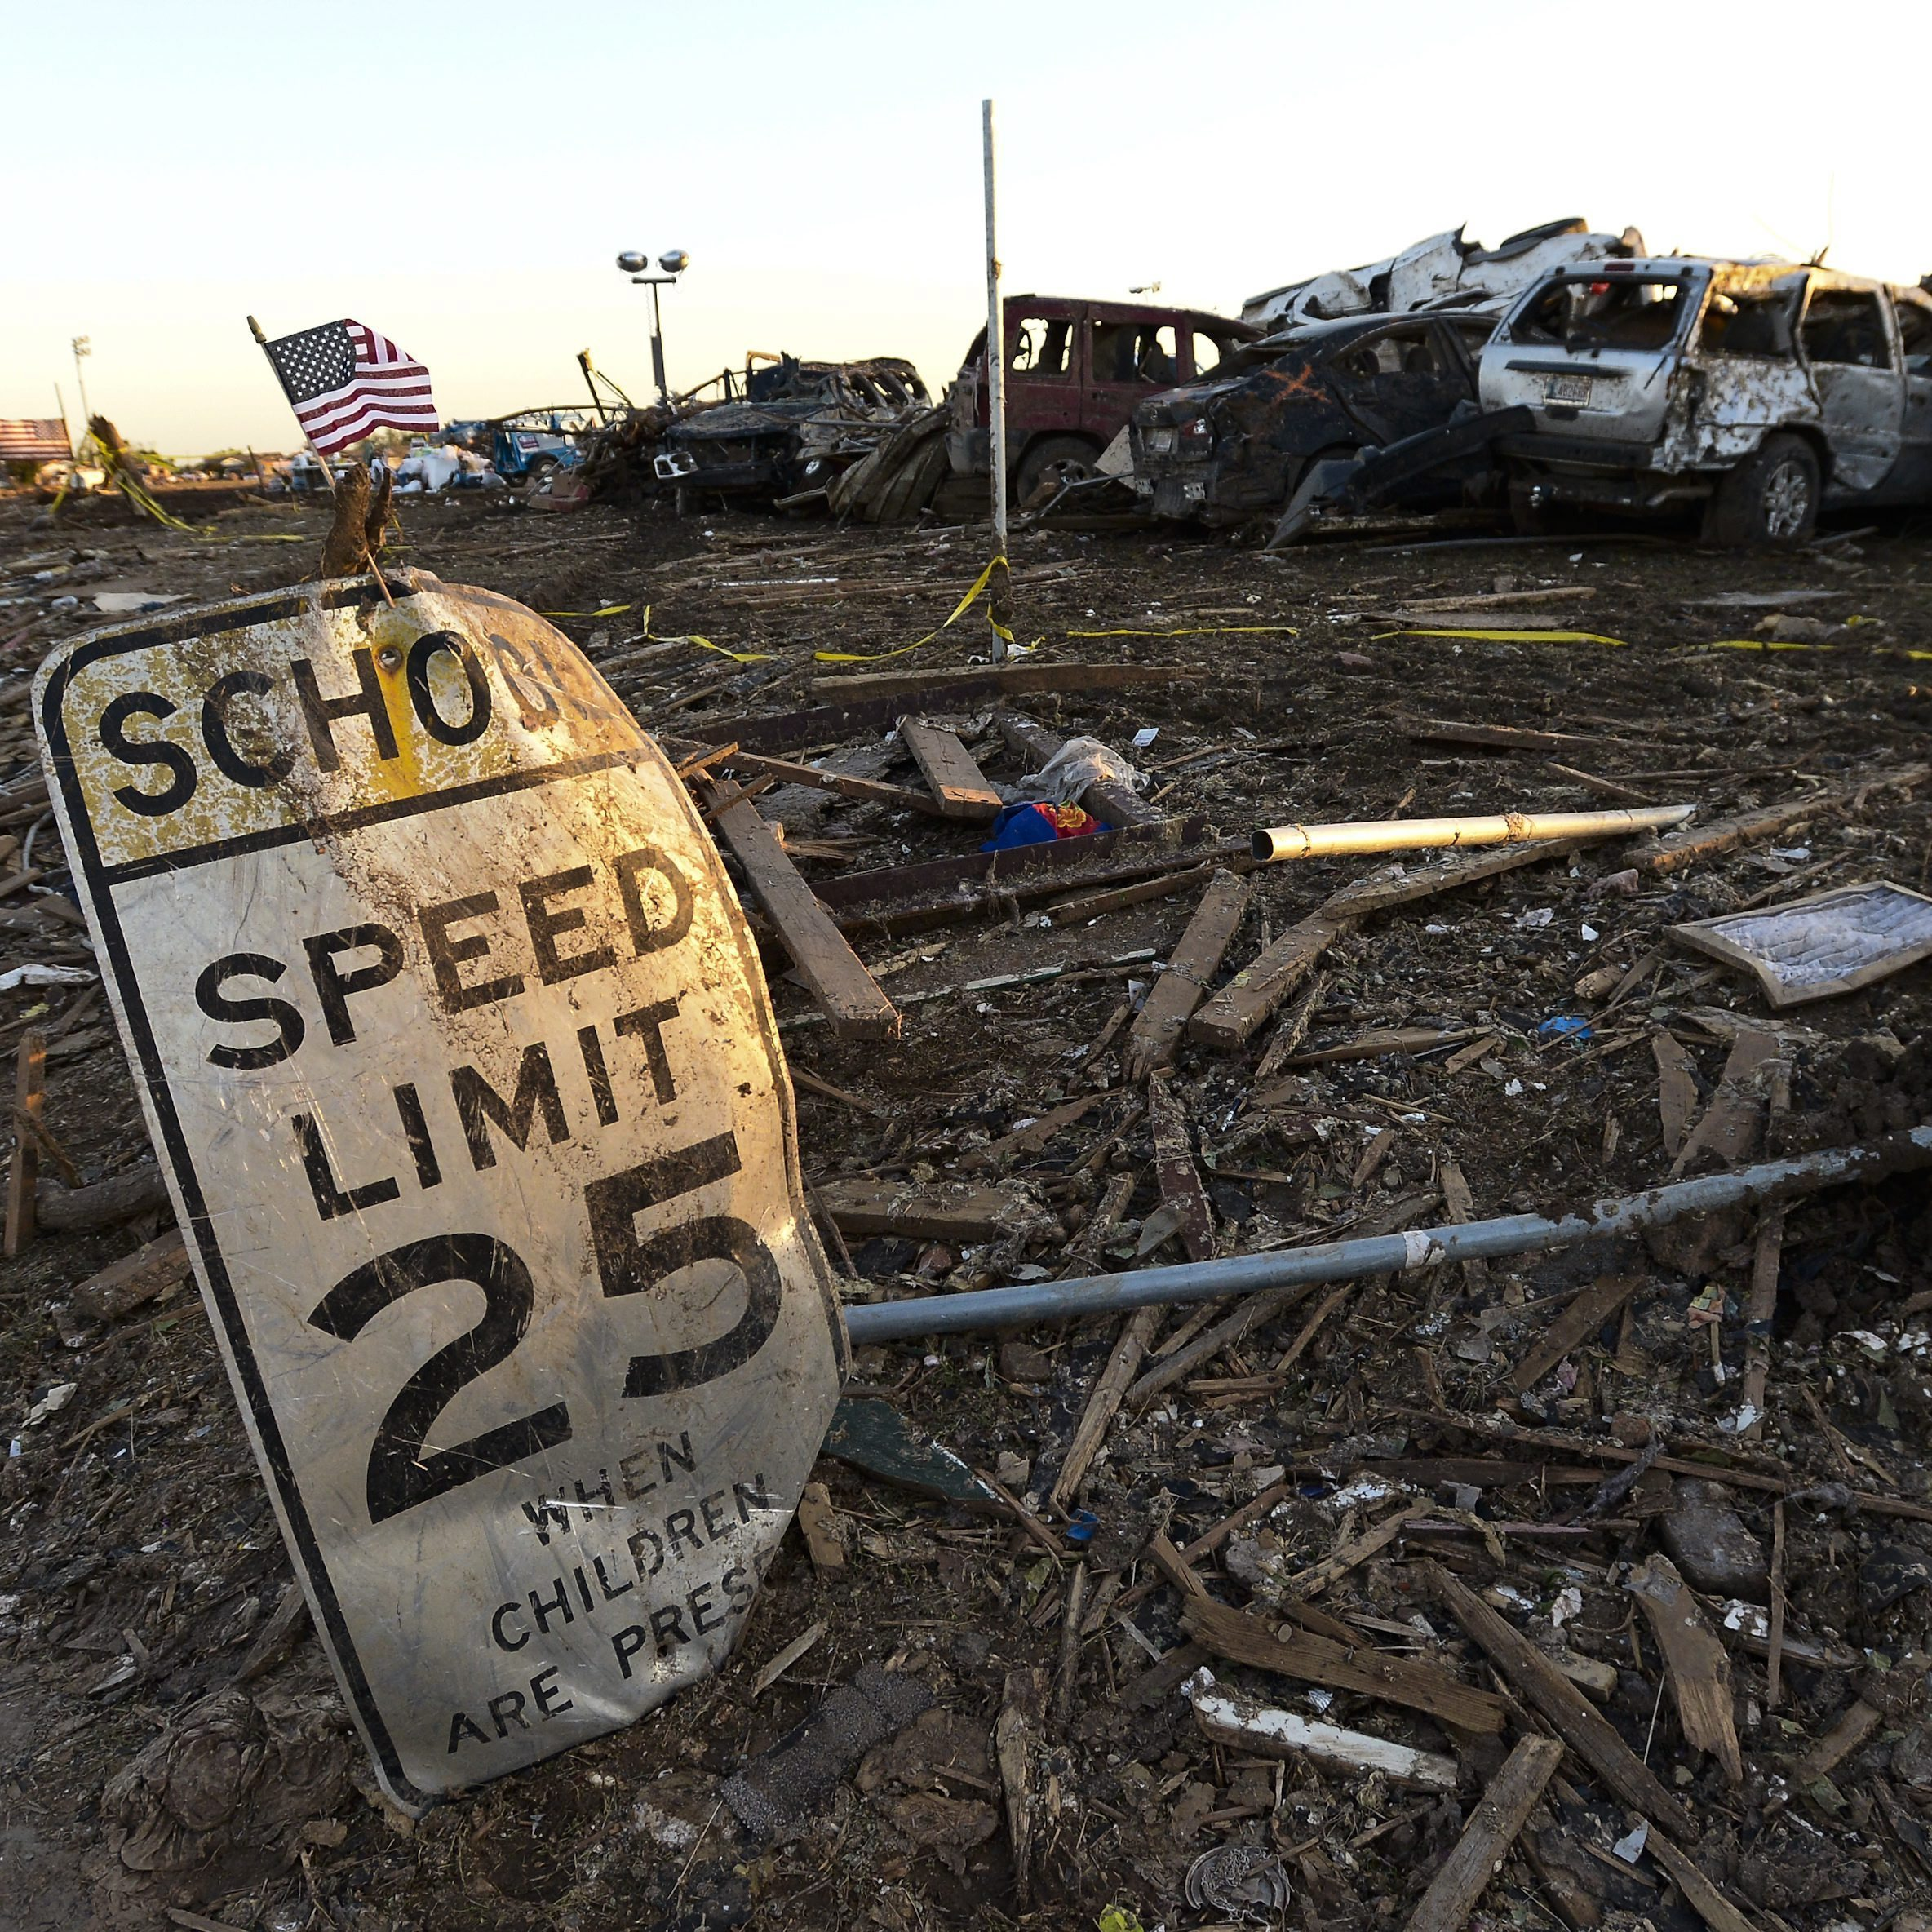 The scene at Plaza Towers Elementary School in Moore, Okla., which was destroyed by Monday's tornado. Seven children died there.